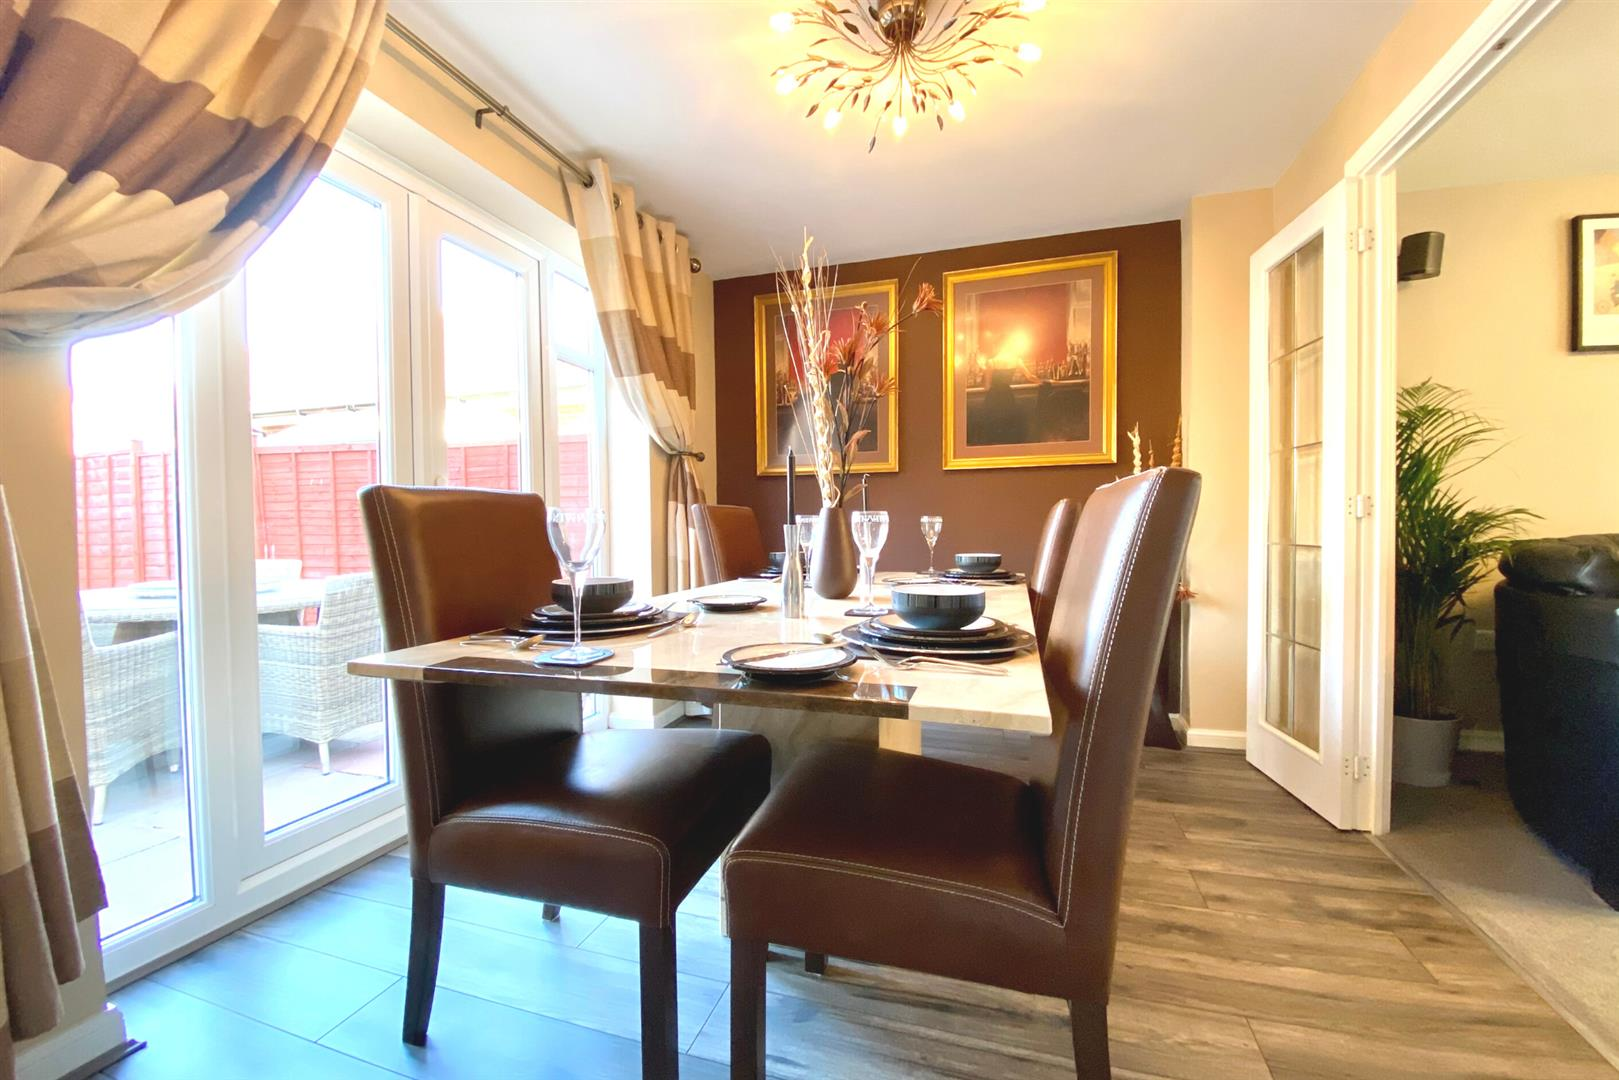 5 bed detached for sale in Three Mile Cross  - Property Image 5